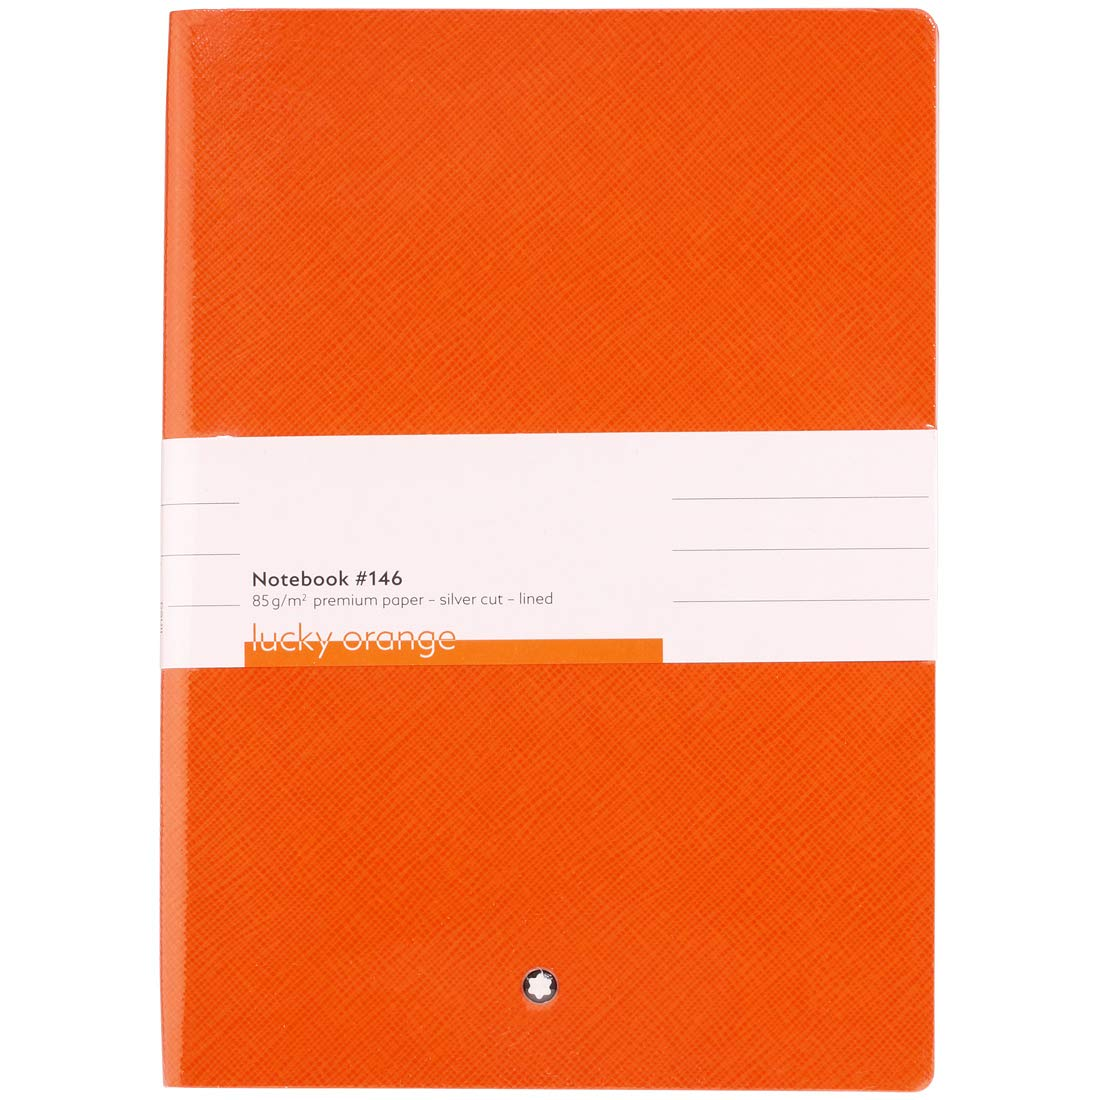 Mont Blanc Notebook 116225 Fine Stationery # 146/Leather Lined A5 Notebook with Soft Cover. Colour: Lucky Orange/192 Pages by MONTBLANC